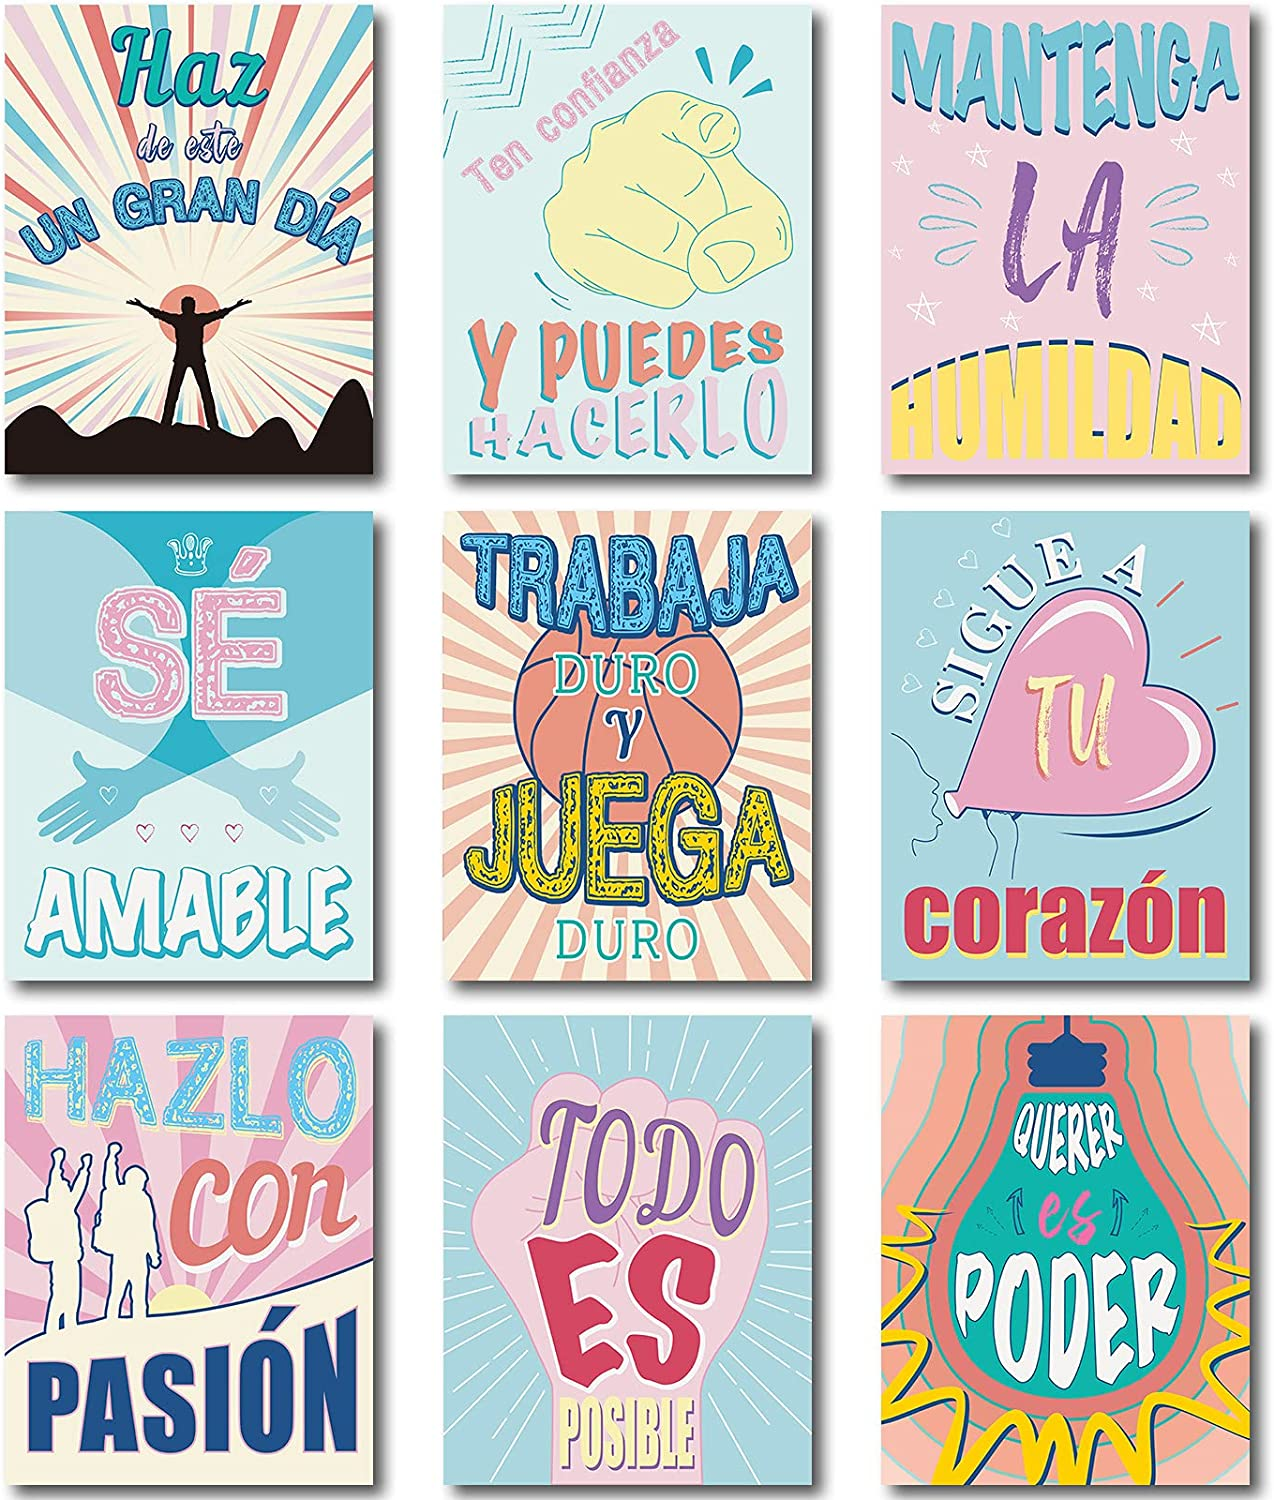 9 Pieces Spanish Classroom Decorations Spanish Motivational Posters for Middle and High School Classroom Decoration Inspirational Wall Art Inspirational Posters Motivational Quote Wall Decor